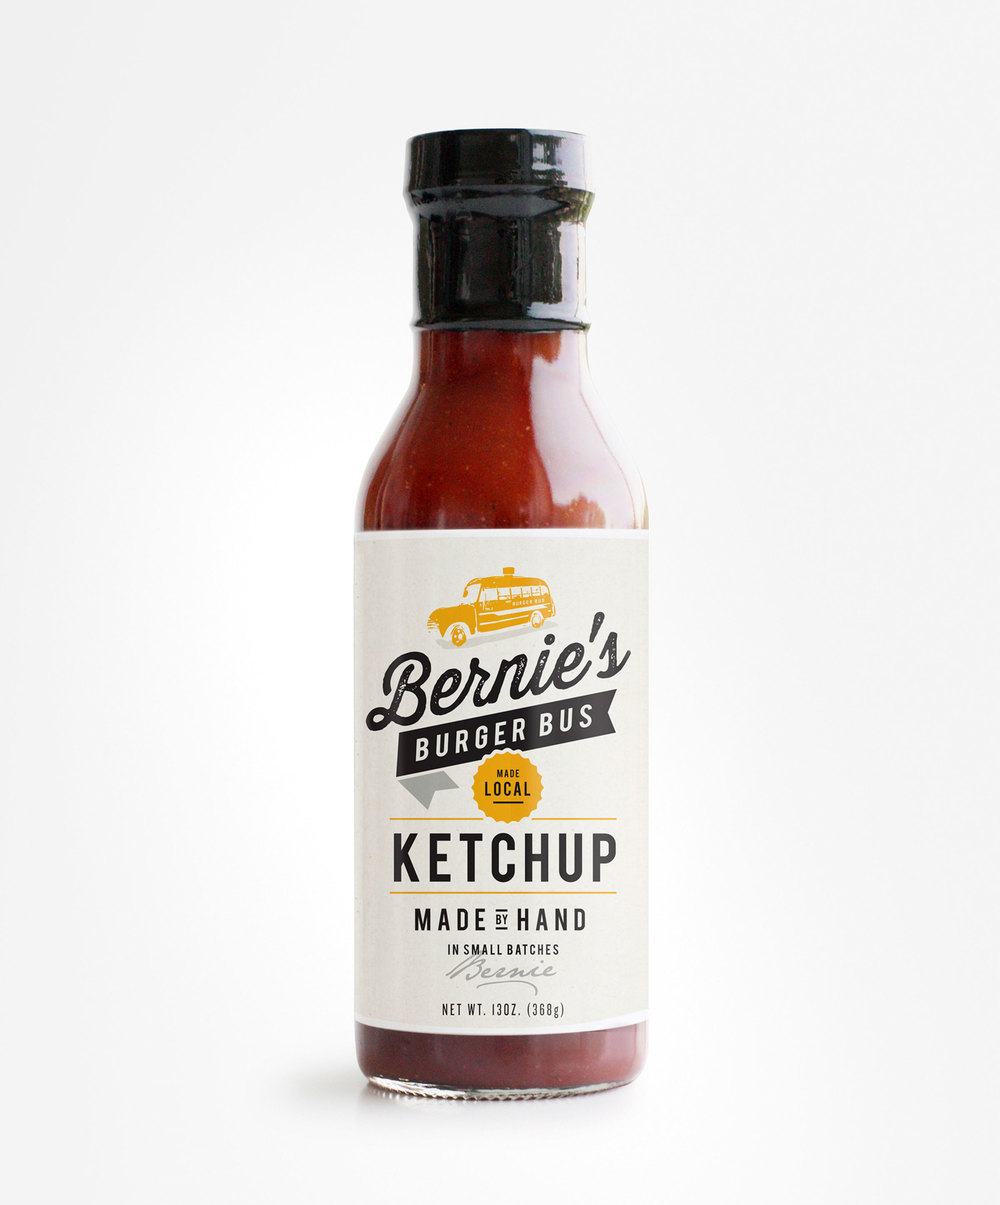 Ketchup Bottle Designs - Bernies Burger Bus Ketchup